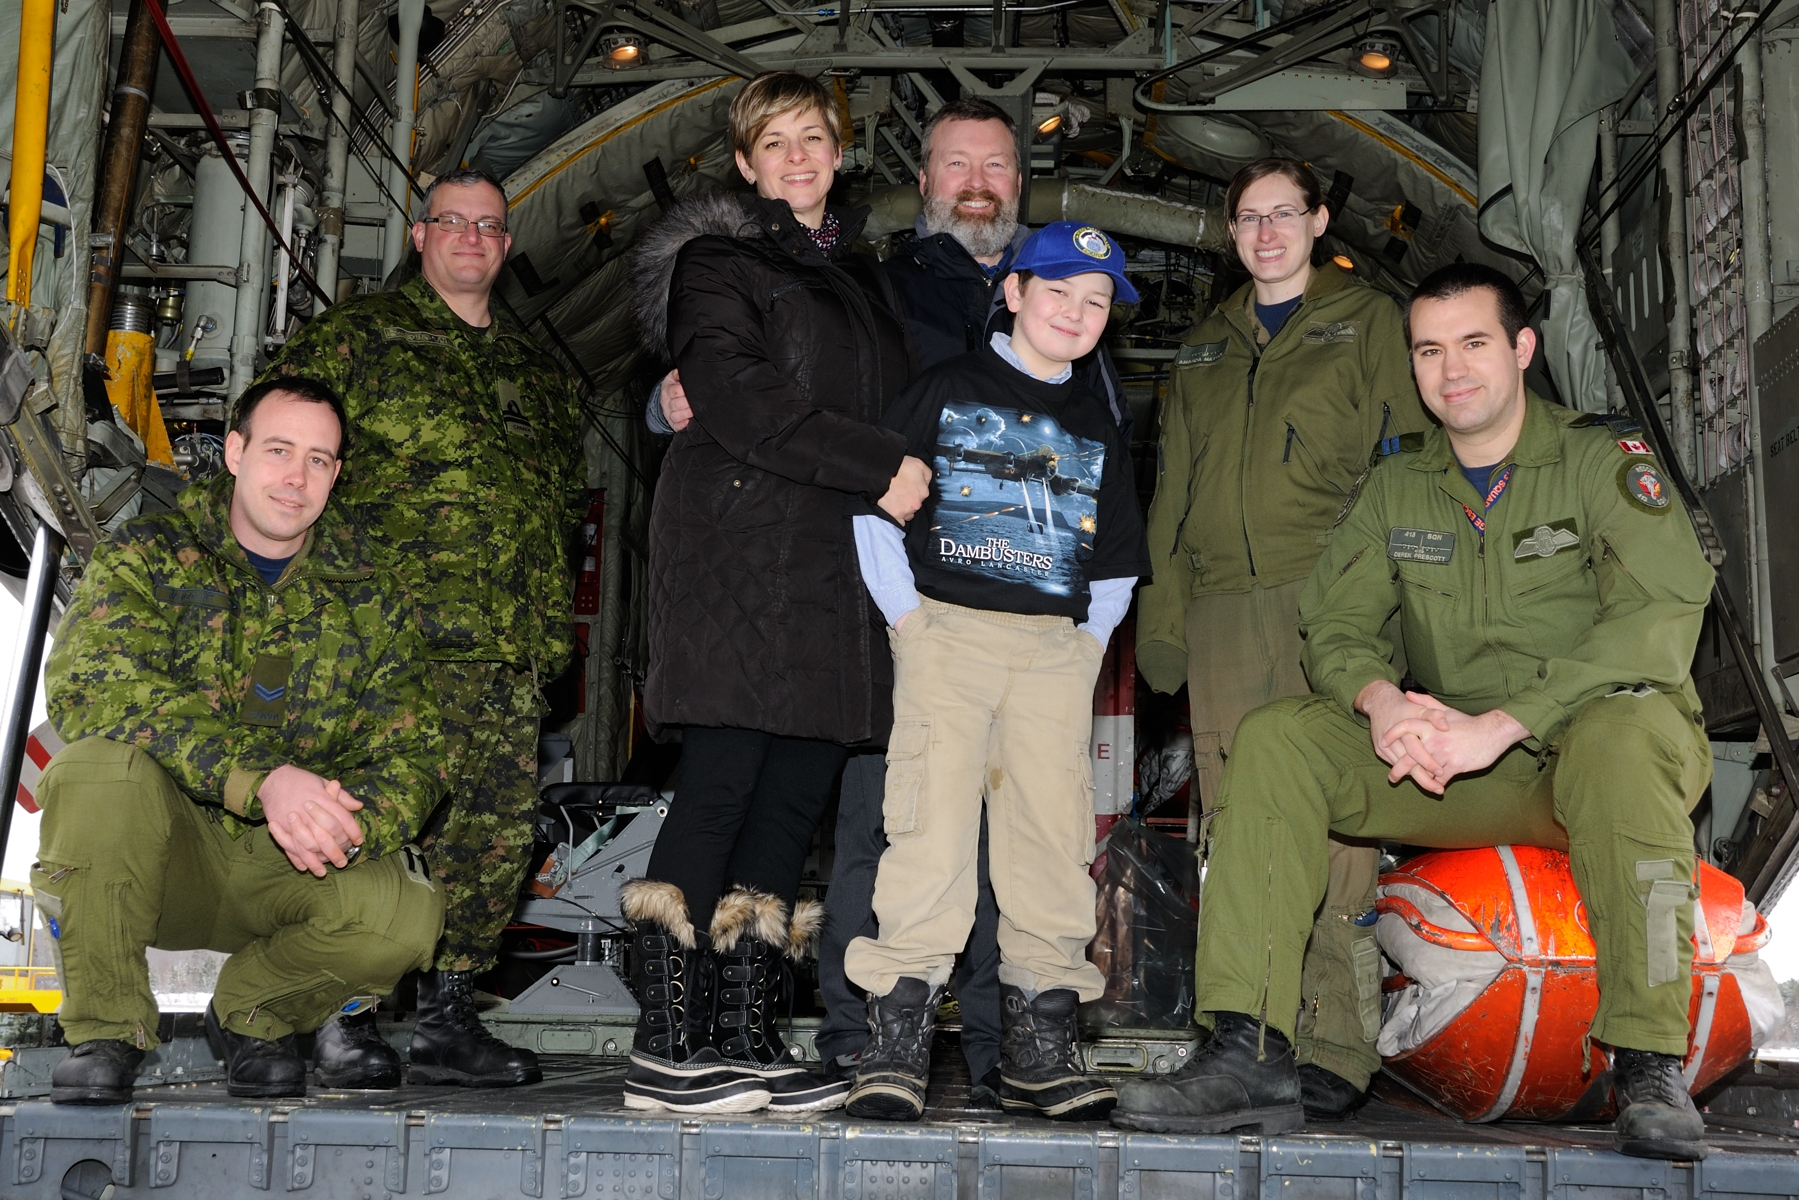 Loadmaster Corporal Christophe Rancourt (left), 14 Wing public affairs officer Lieutenant(N) Sylvain Rousseau, Anne-Marie McElrone, Michael MacDonald, Euan MacDonald, CC-130 Hercules pilot Captain Amanda Mattioli and Captain Derek Prescott, and air combat systems officer, gather for a photograph on March 11, 2016, when Euan MacDonald and his family spent the afternoon getting a look at what the modern Canadian Armed Forces do, particularly on Canada's East Coast. 413 Squadron personnel showed them through the CC-130 Hercules cargo aircraft and the CH-149 Cormorant helicopter used during search and rescue missions. PHOTO: Sergeant Peter Nicholson, GP2016-0055